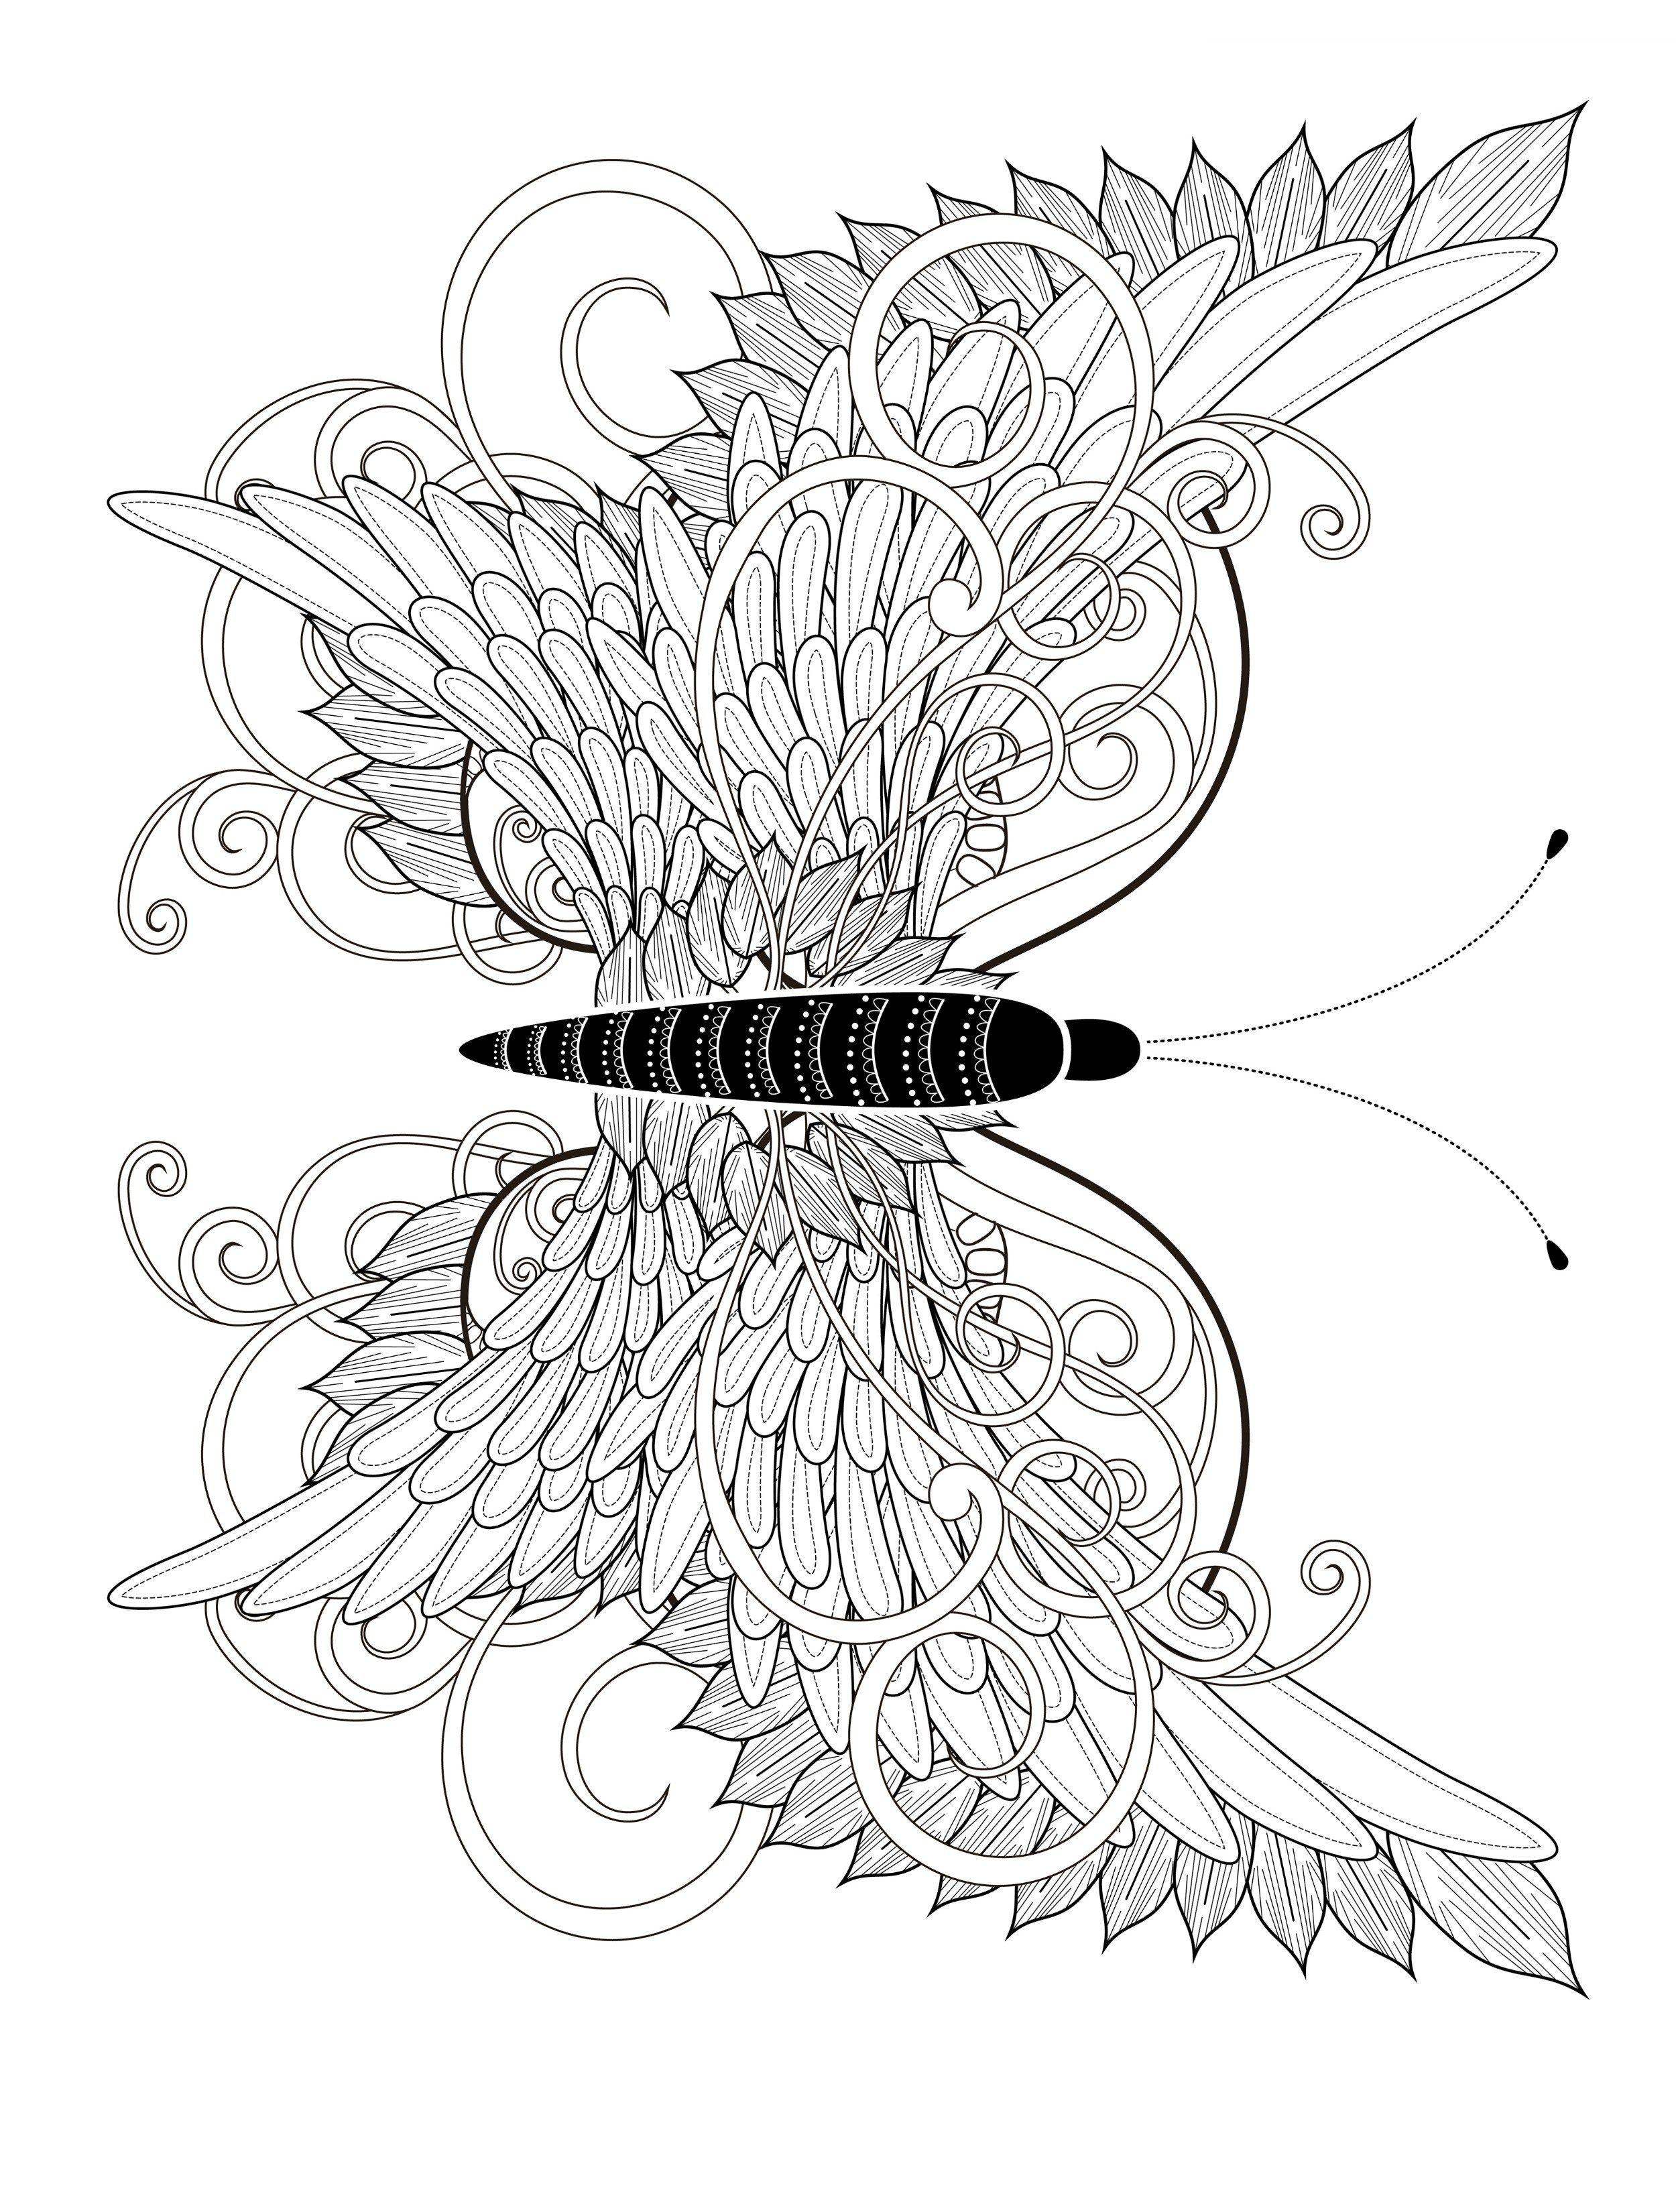 23 Free Printable Insect & Animal Adult Coloring Pages ... | free online coloring pages for adults animals